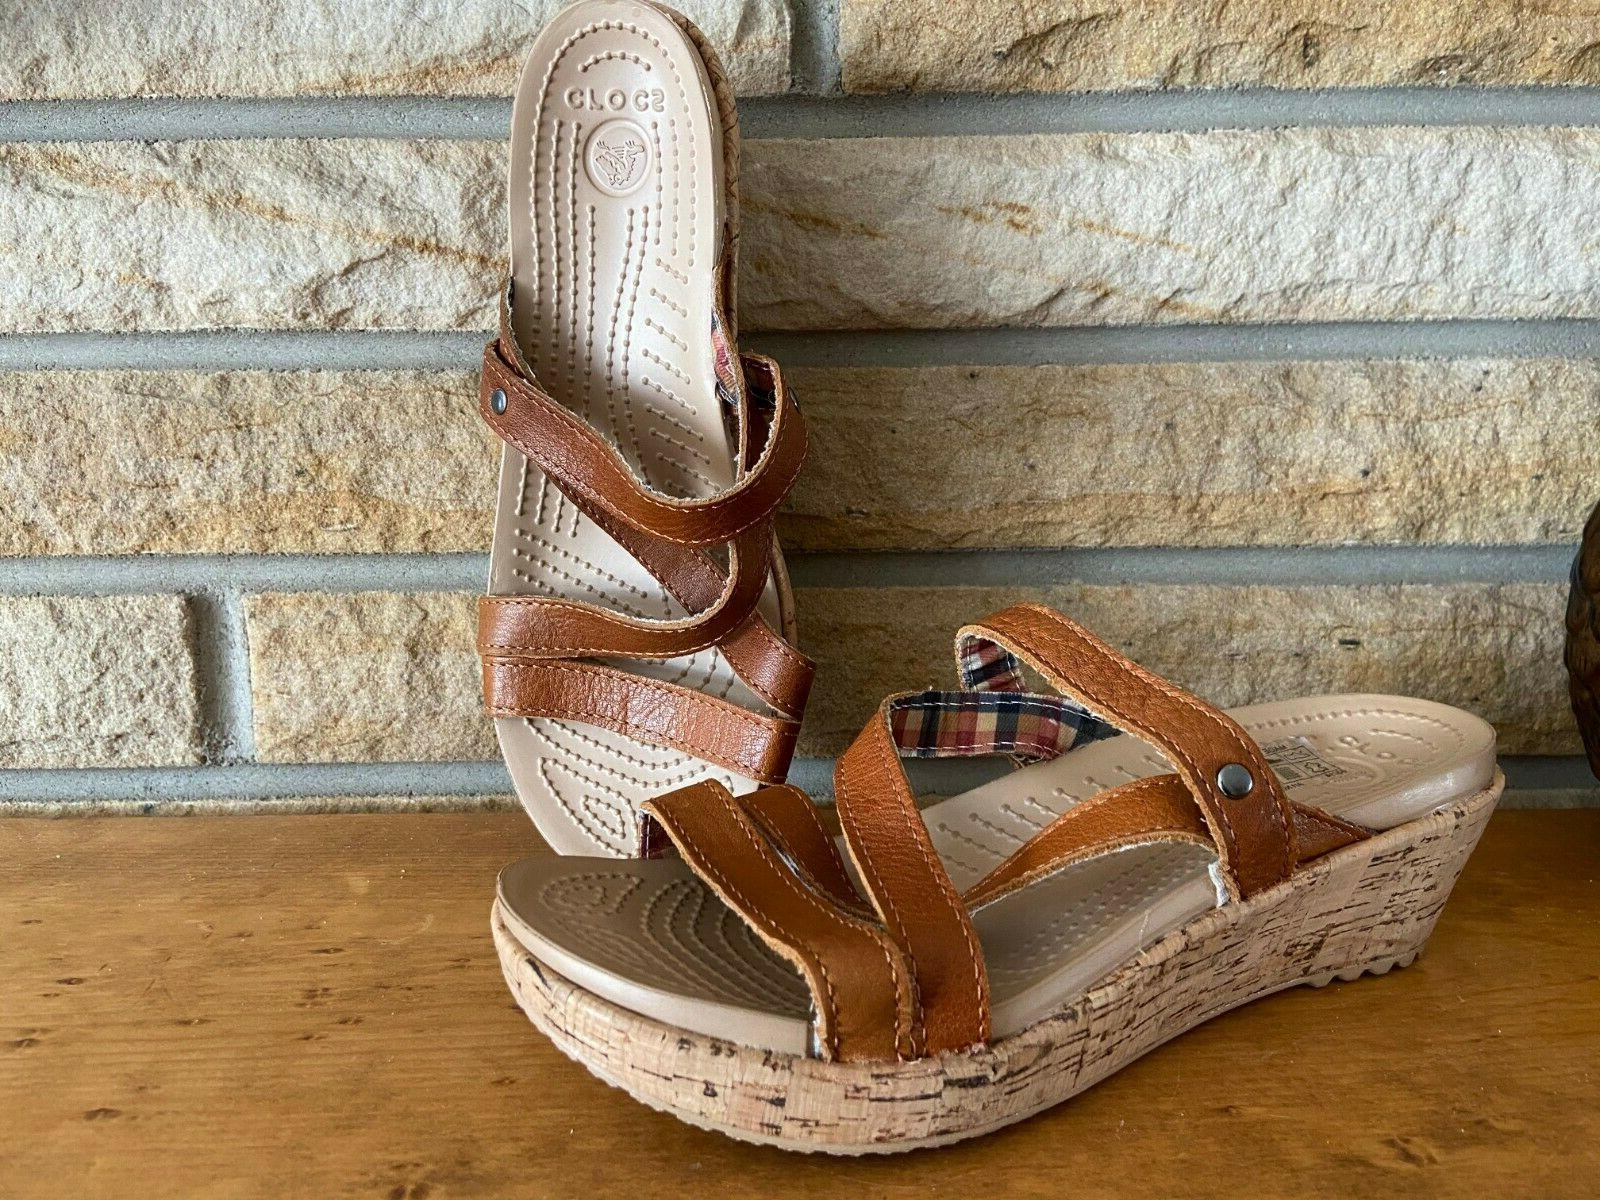 new a leigh cork wedge leather strappy